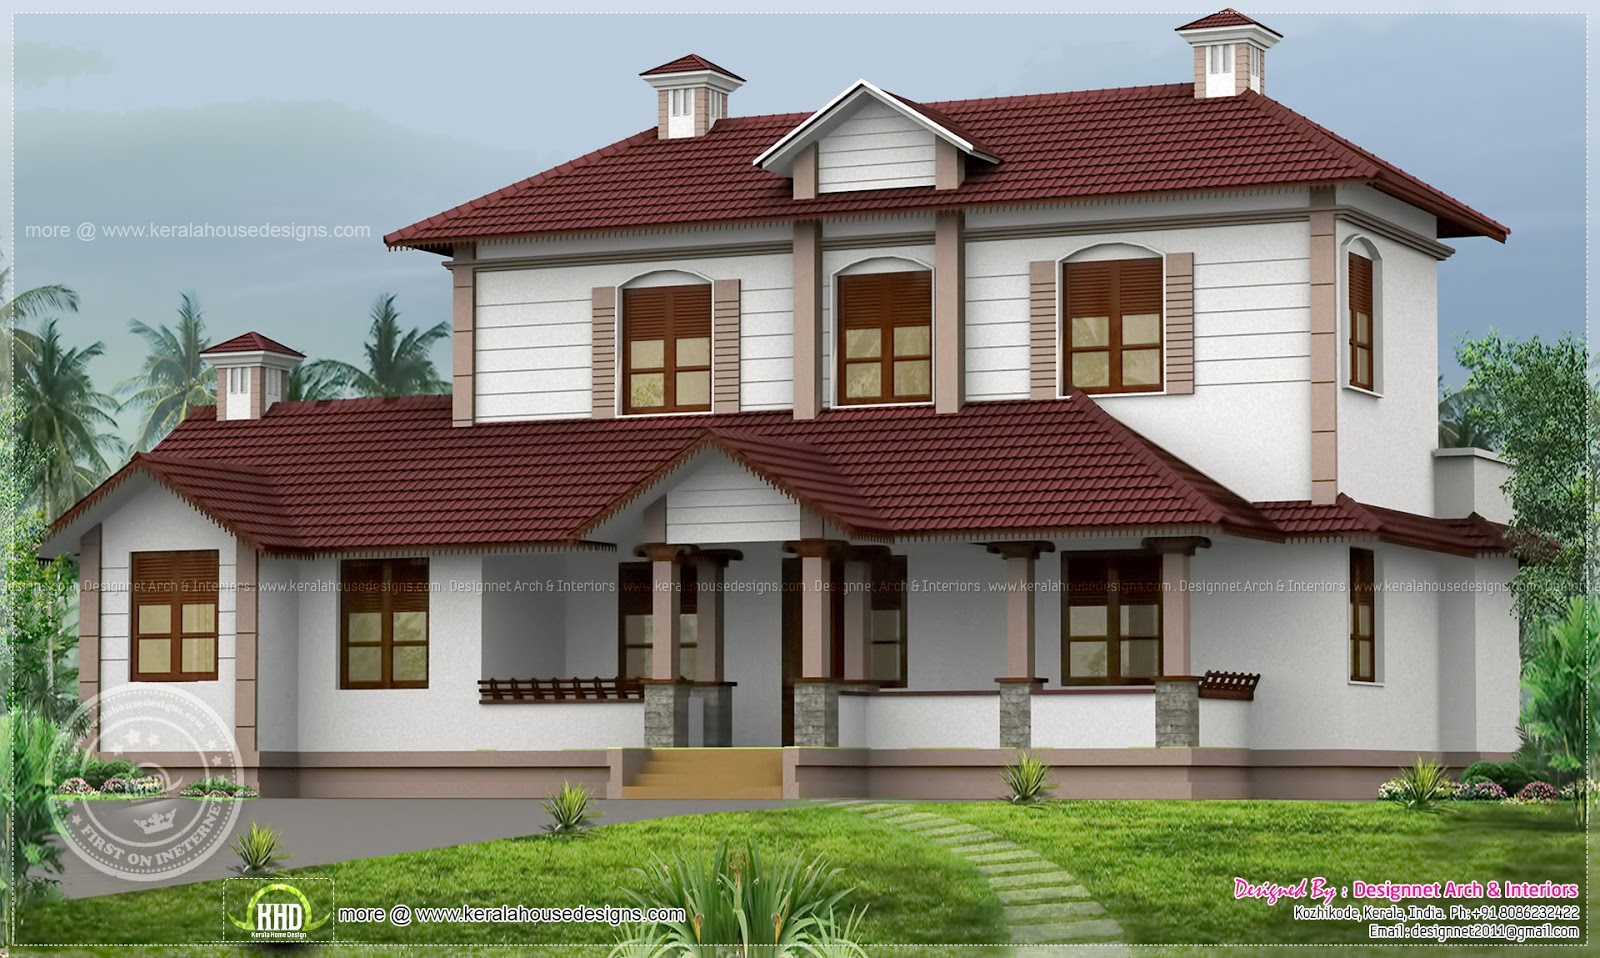 Renovation Model Of An Old House Home Kerala Plans